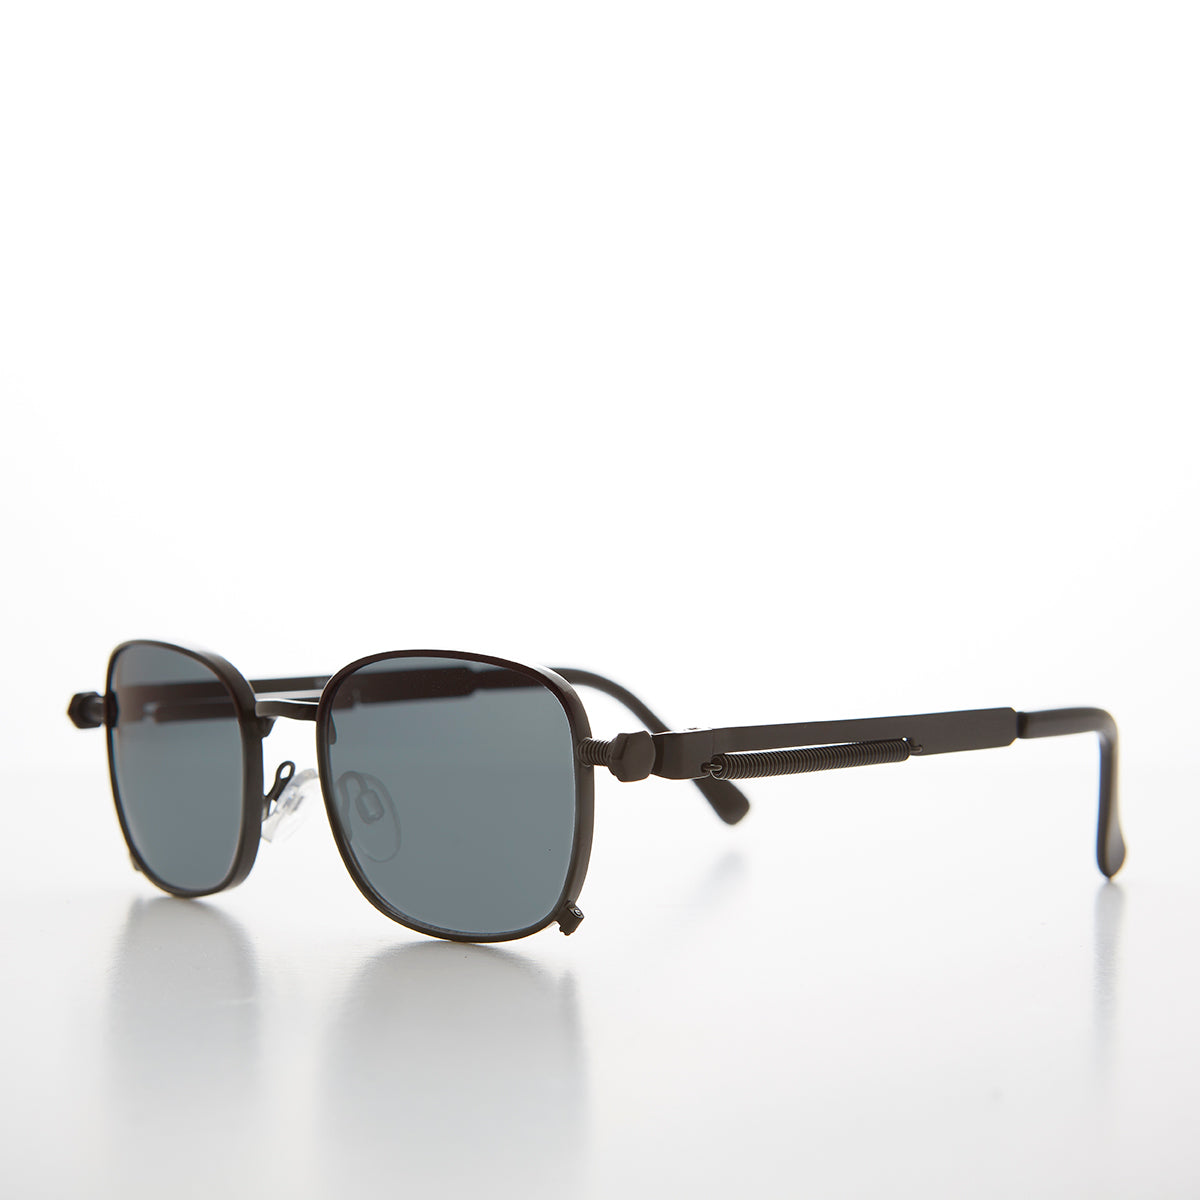 Tailored Steampunk Sunglasses with Industrial Temples